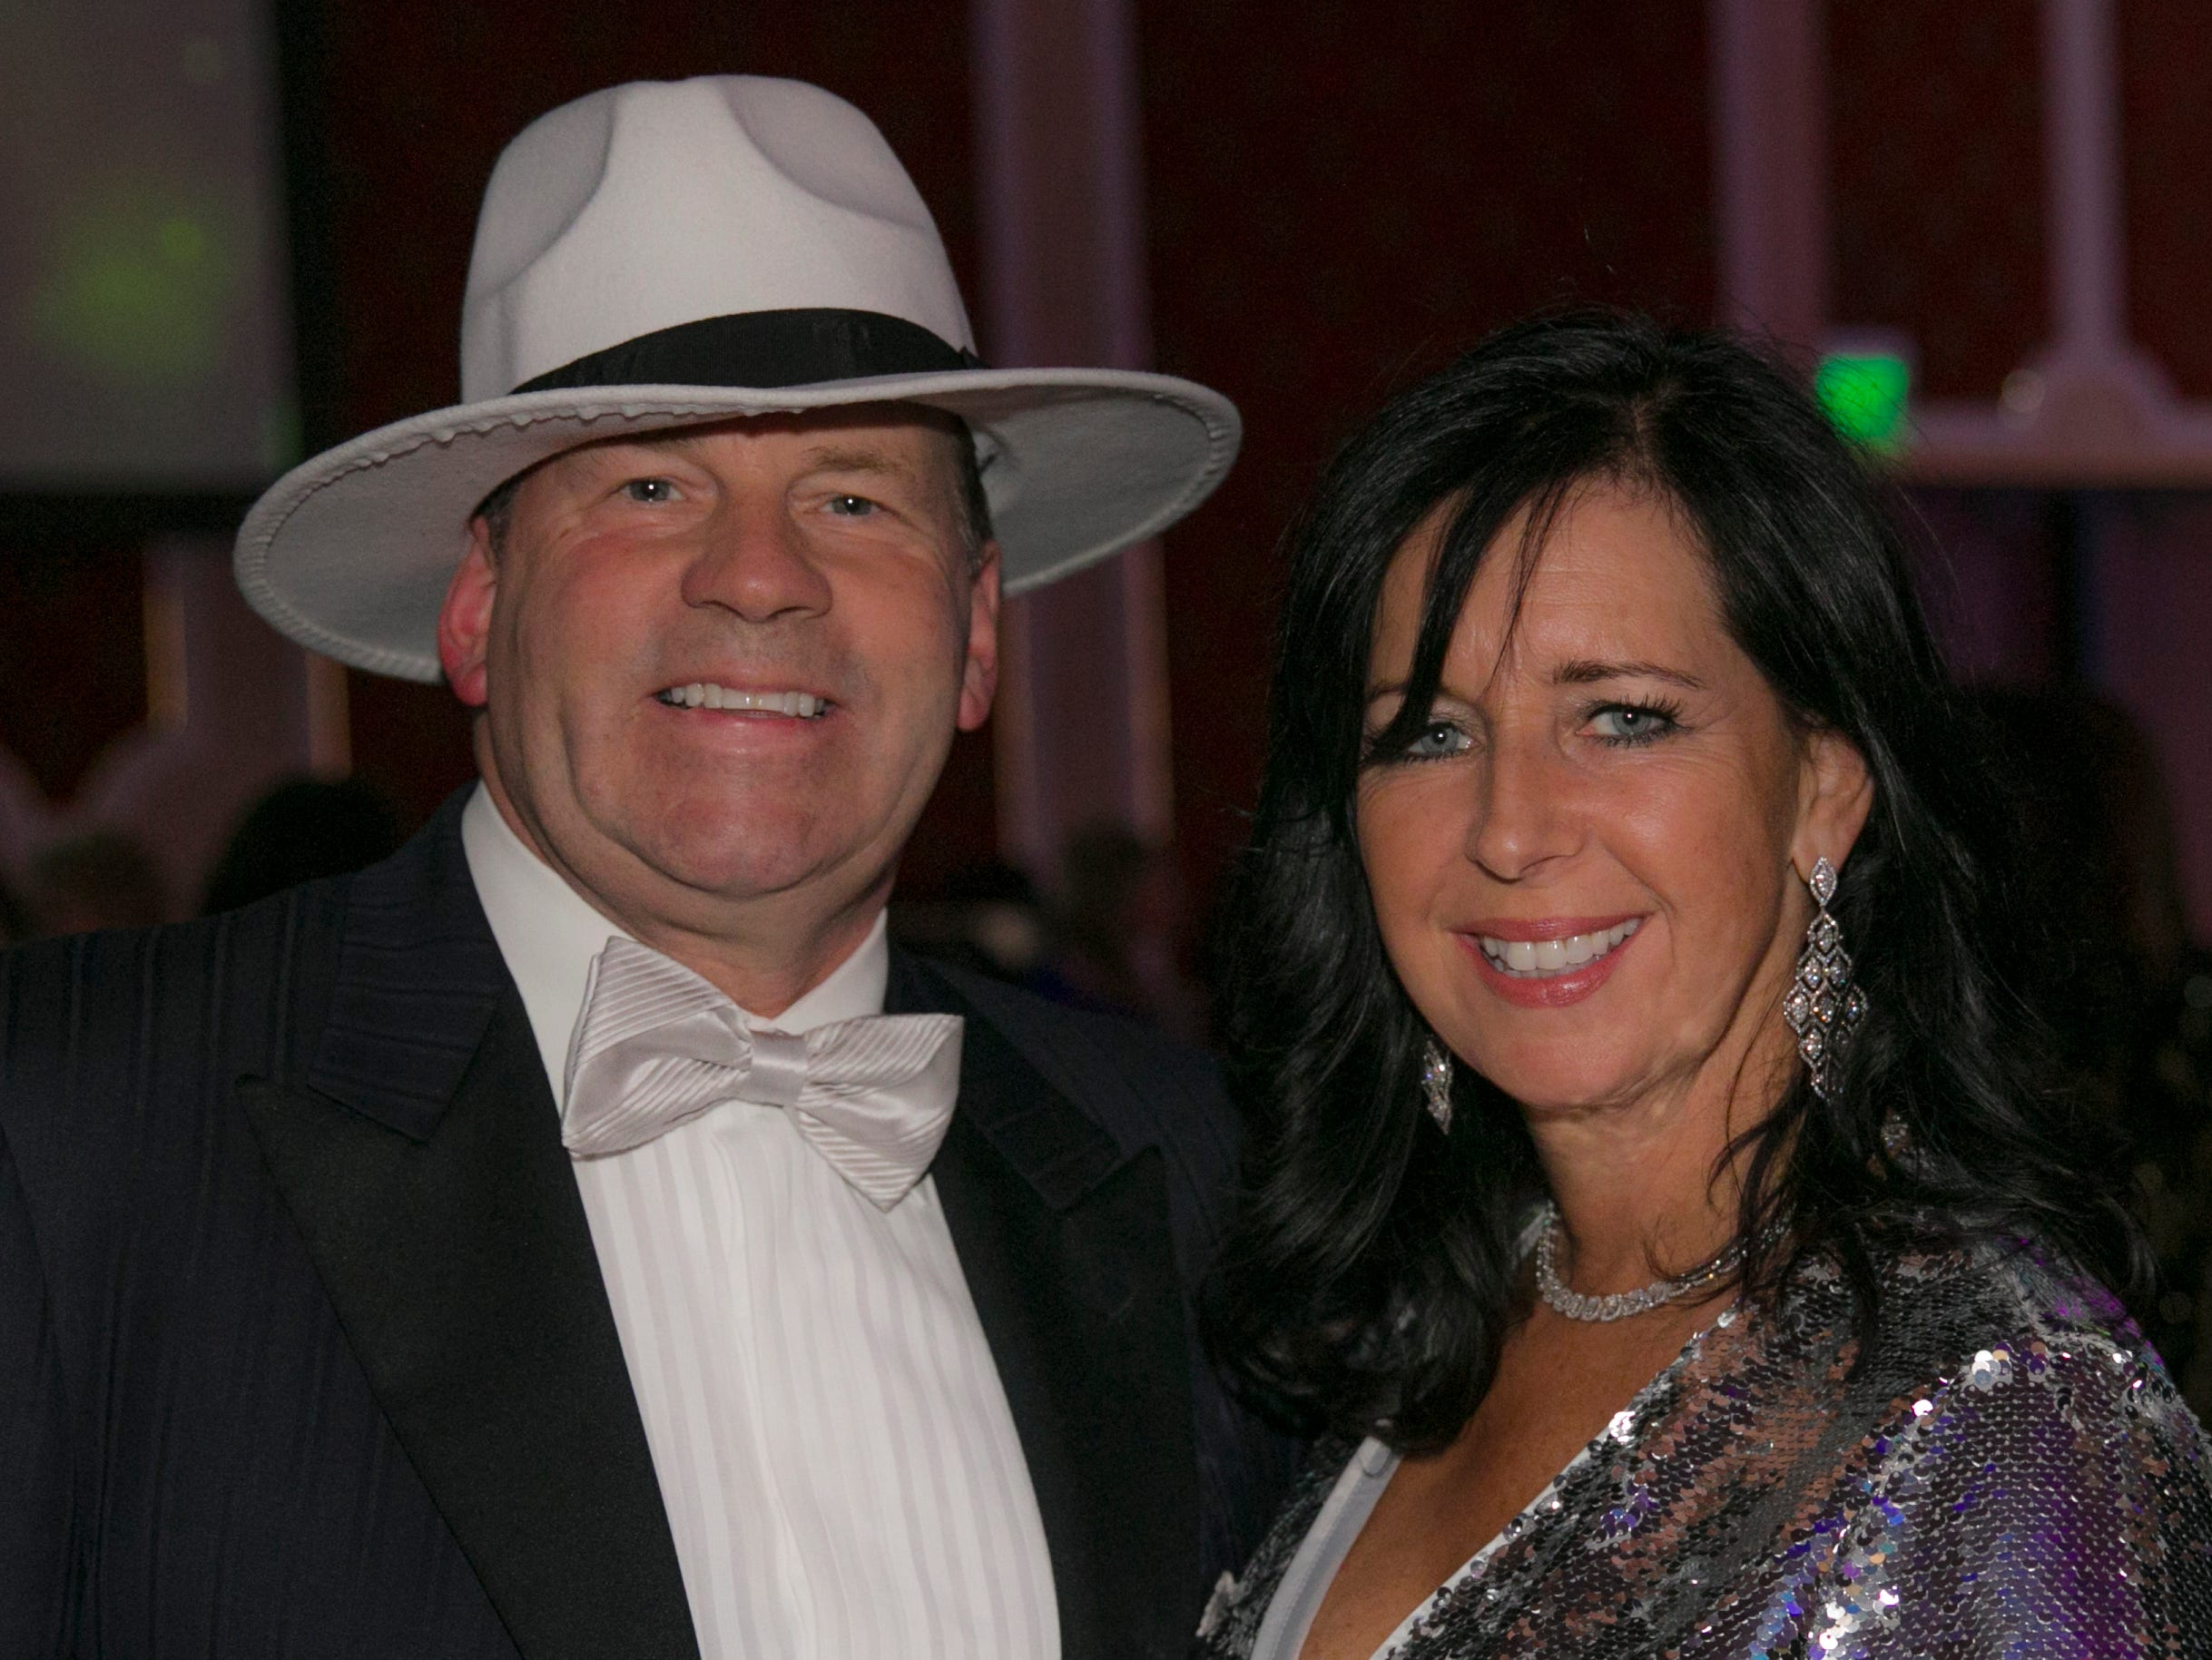 Dr. James Lynch and wife Caroline during the 10th Annual Blue Tie Ball at the Peppermill Resort Spa Casino in Reno, NV on Friday night, Feb. 1, 2019.